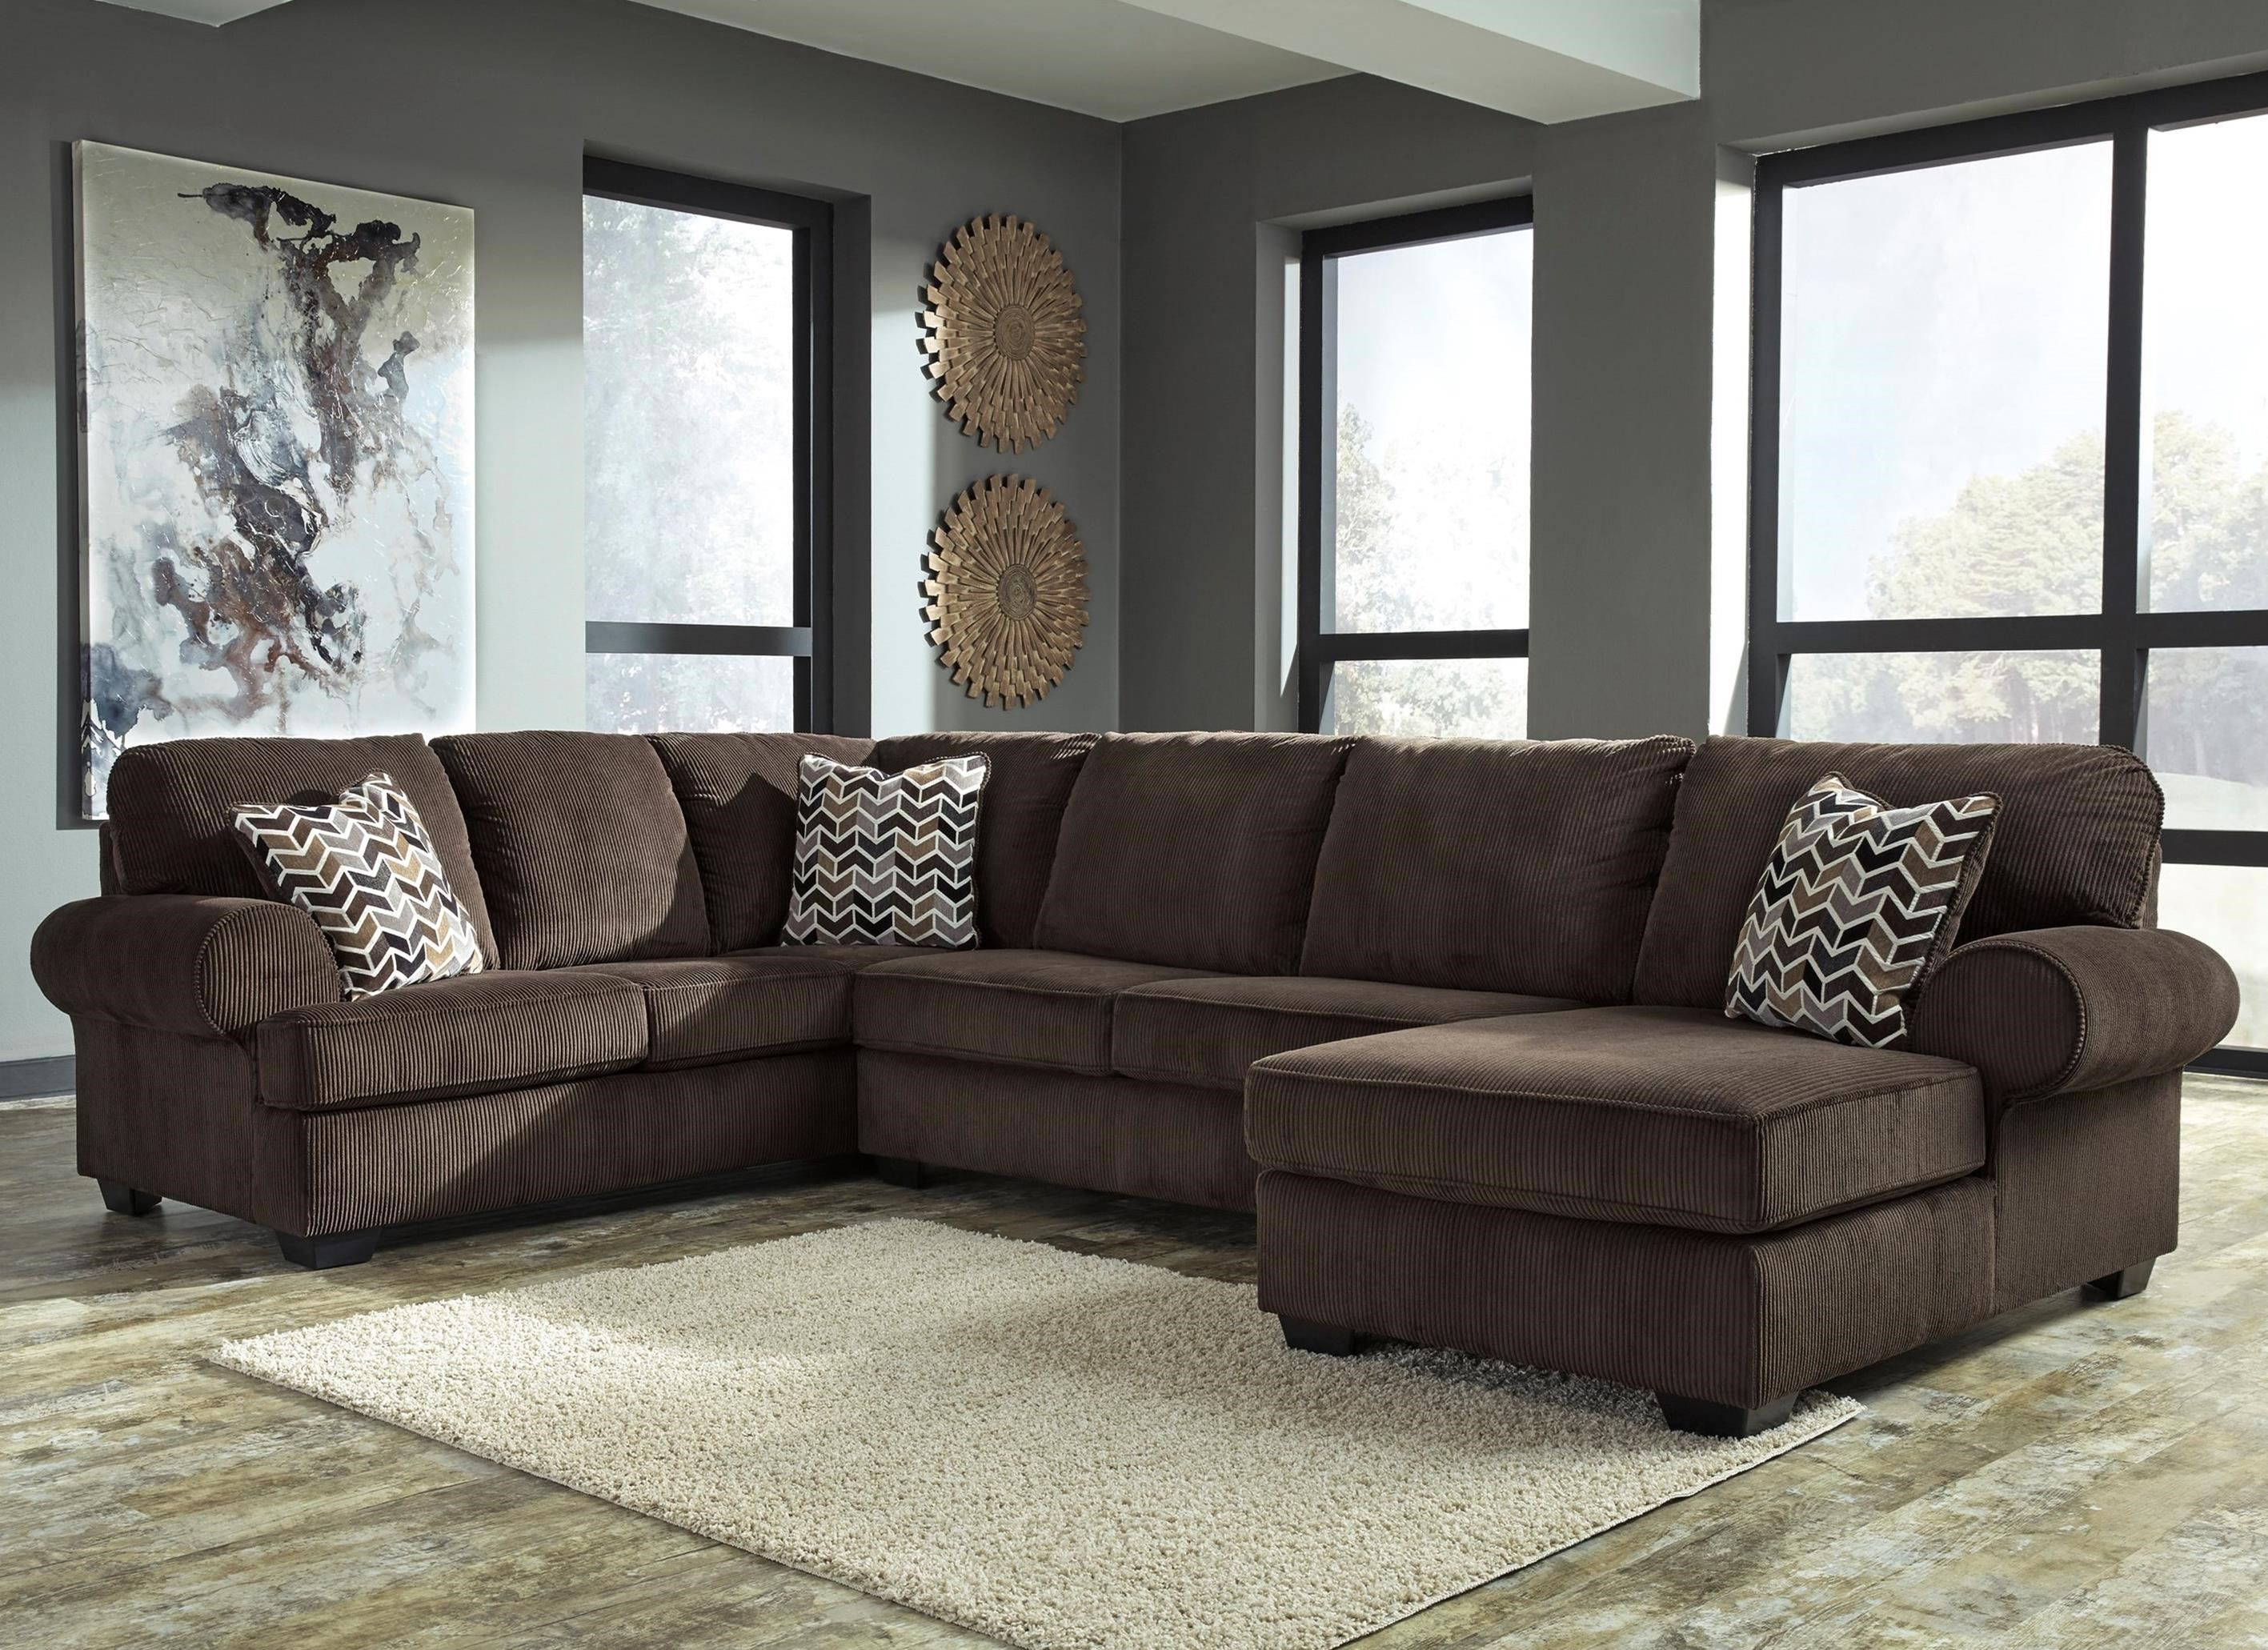 Jinllingsly 3 Piece Sectional With Right Corner Chaise by ...